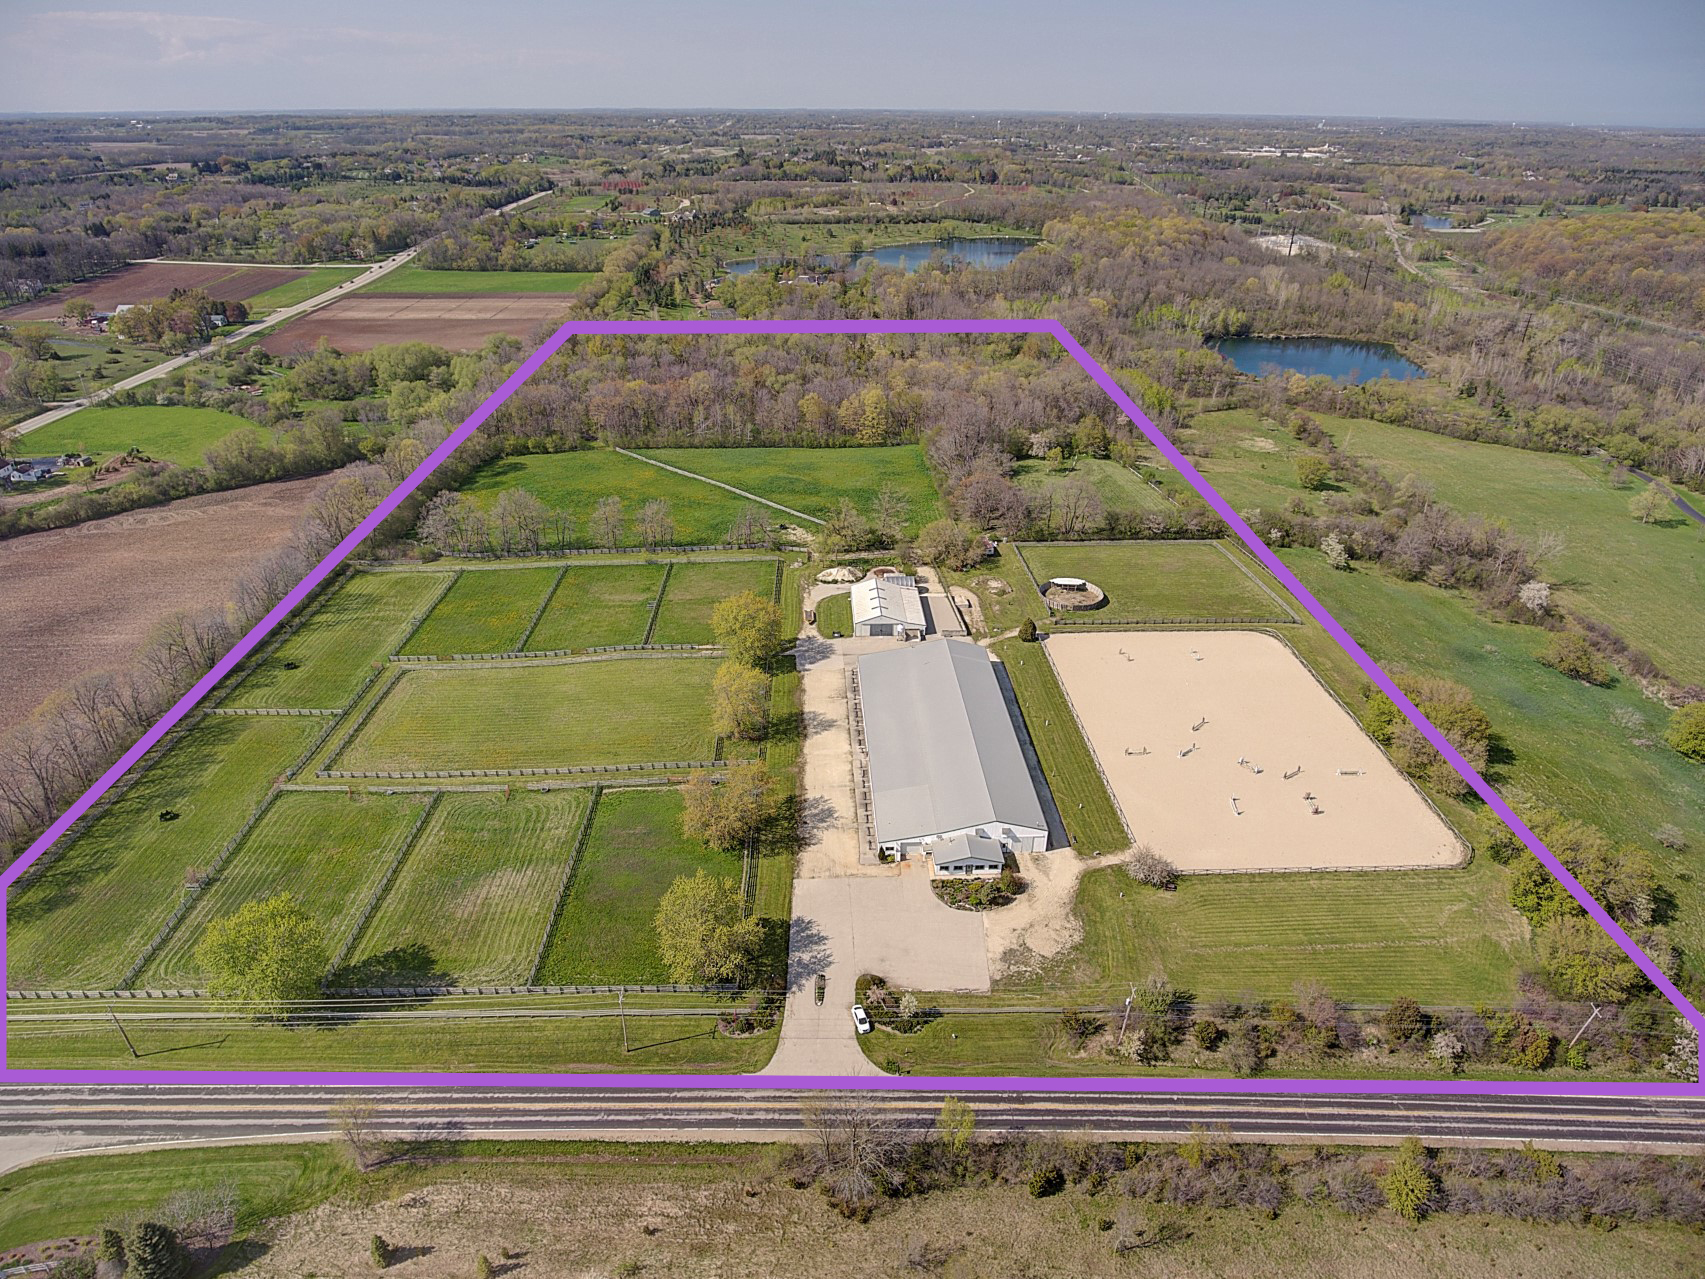 7230 W. Highland Rd. Mequon, WI 53092